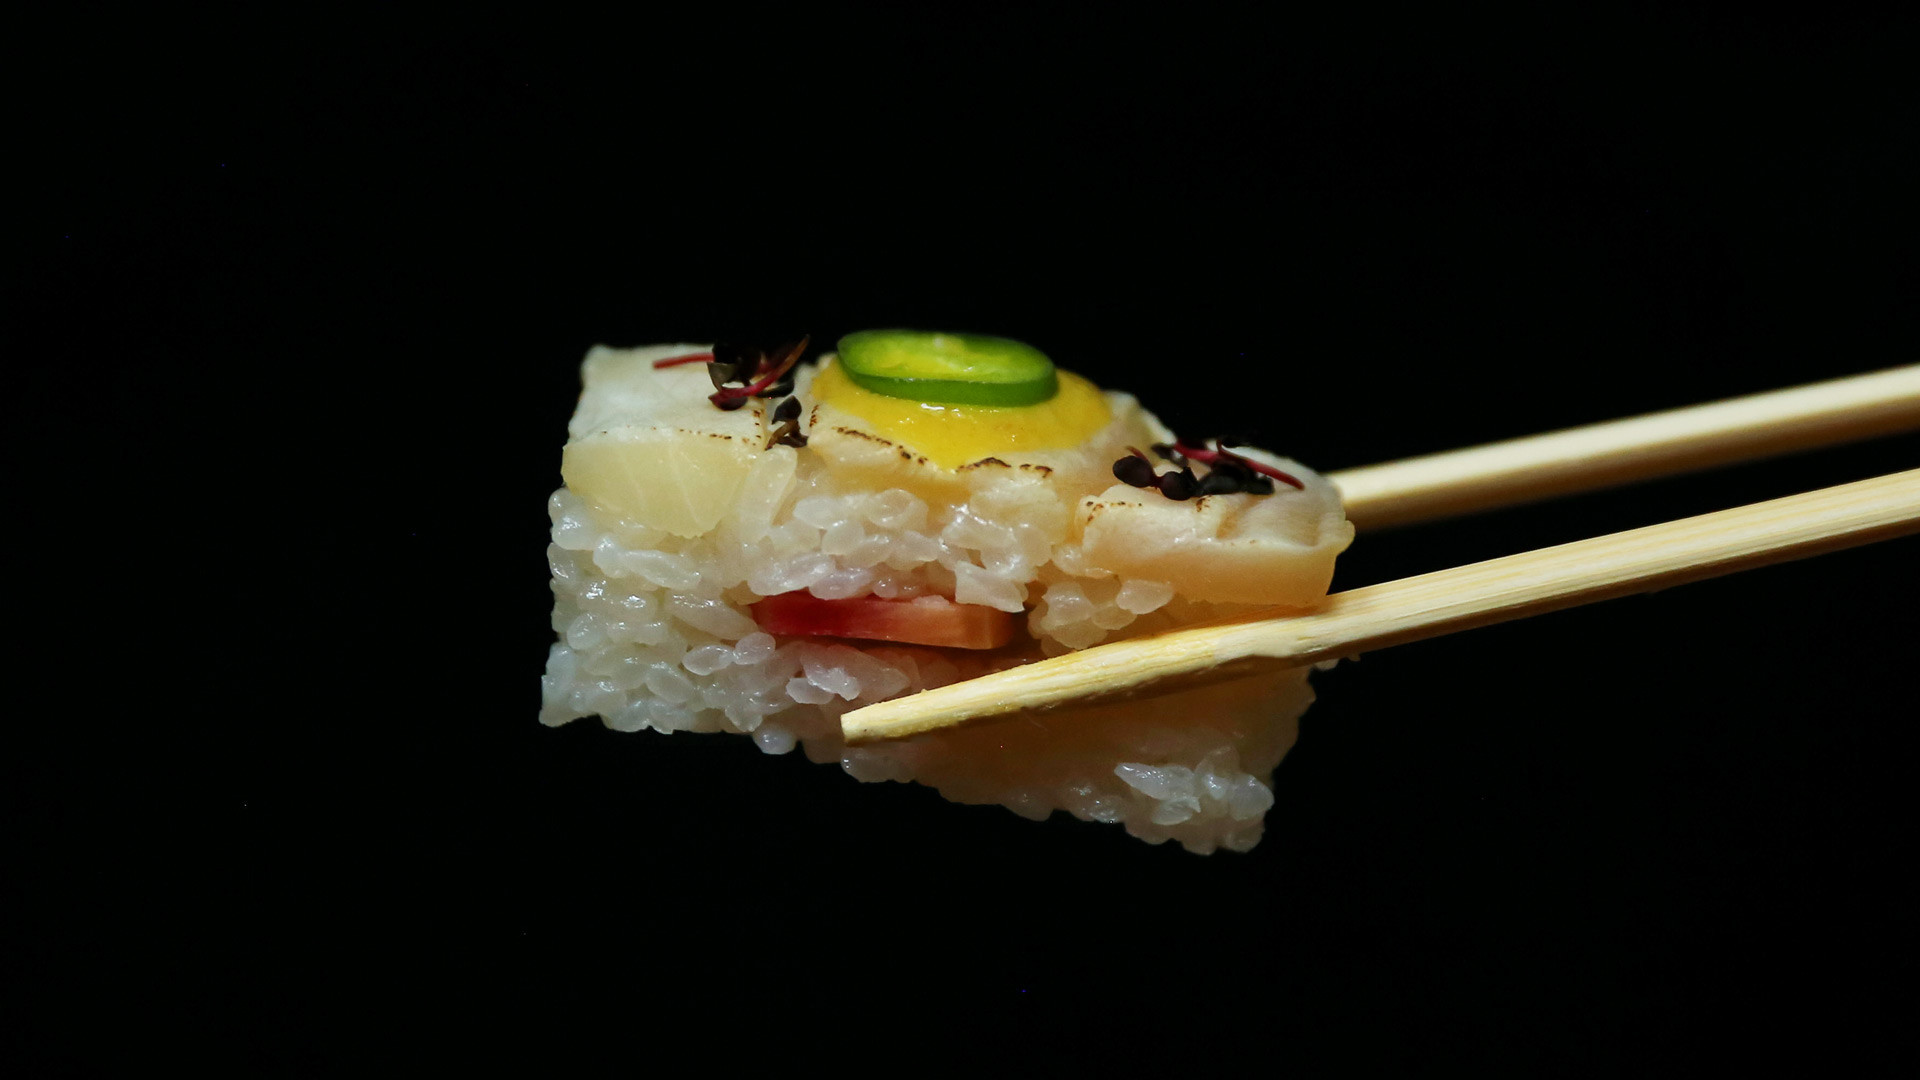 Sushi types and how to eat sushi | Chopsticks hold a piece of yellowtail oshi at Minami Toronto